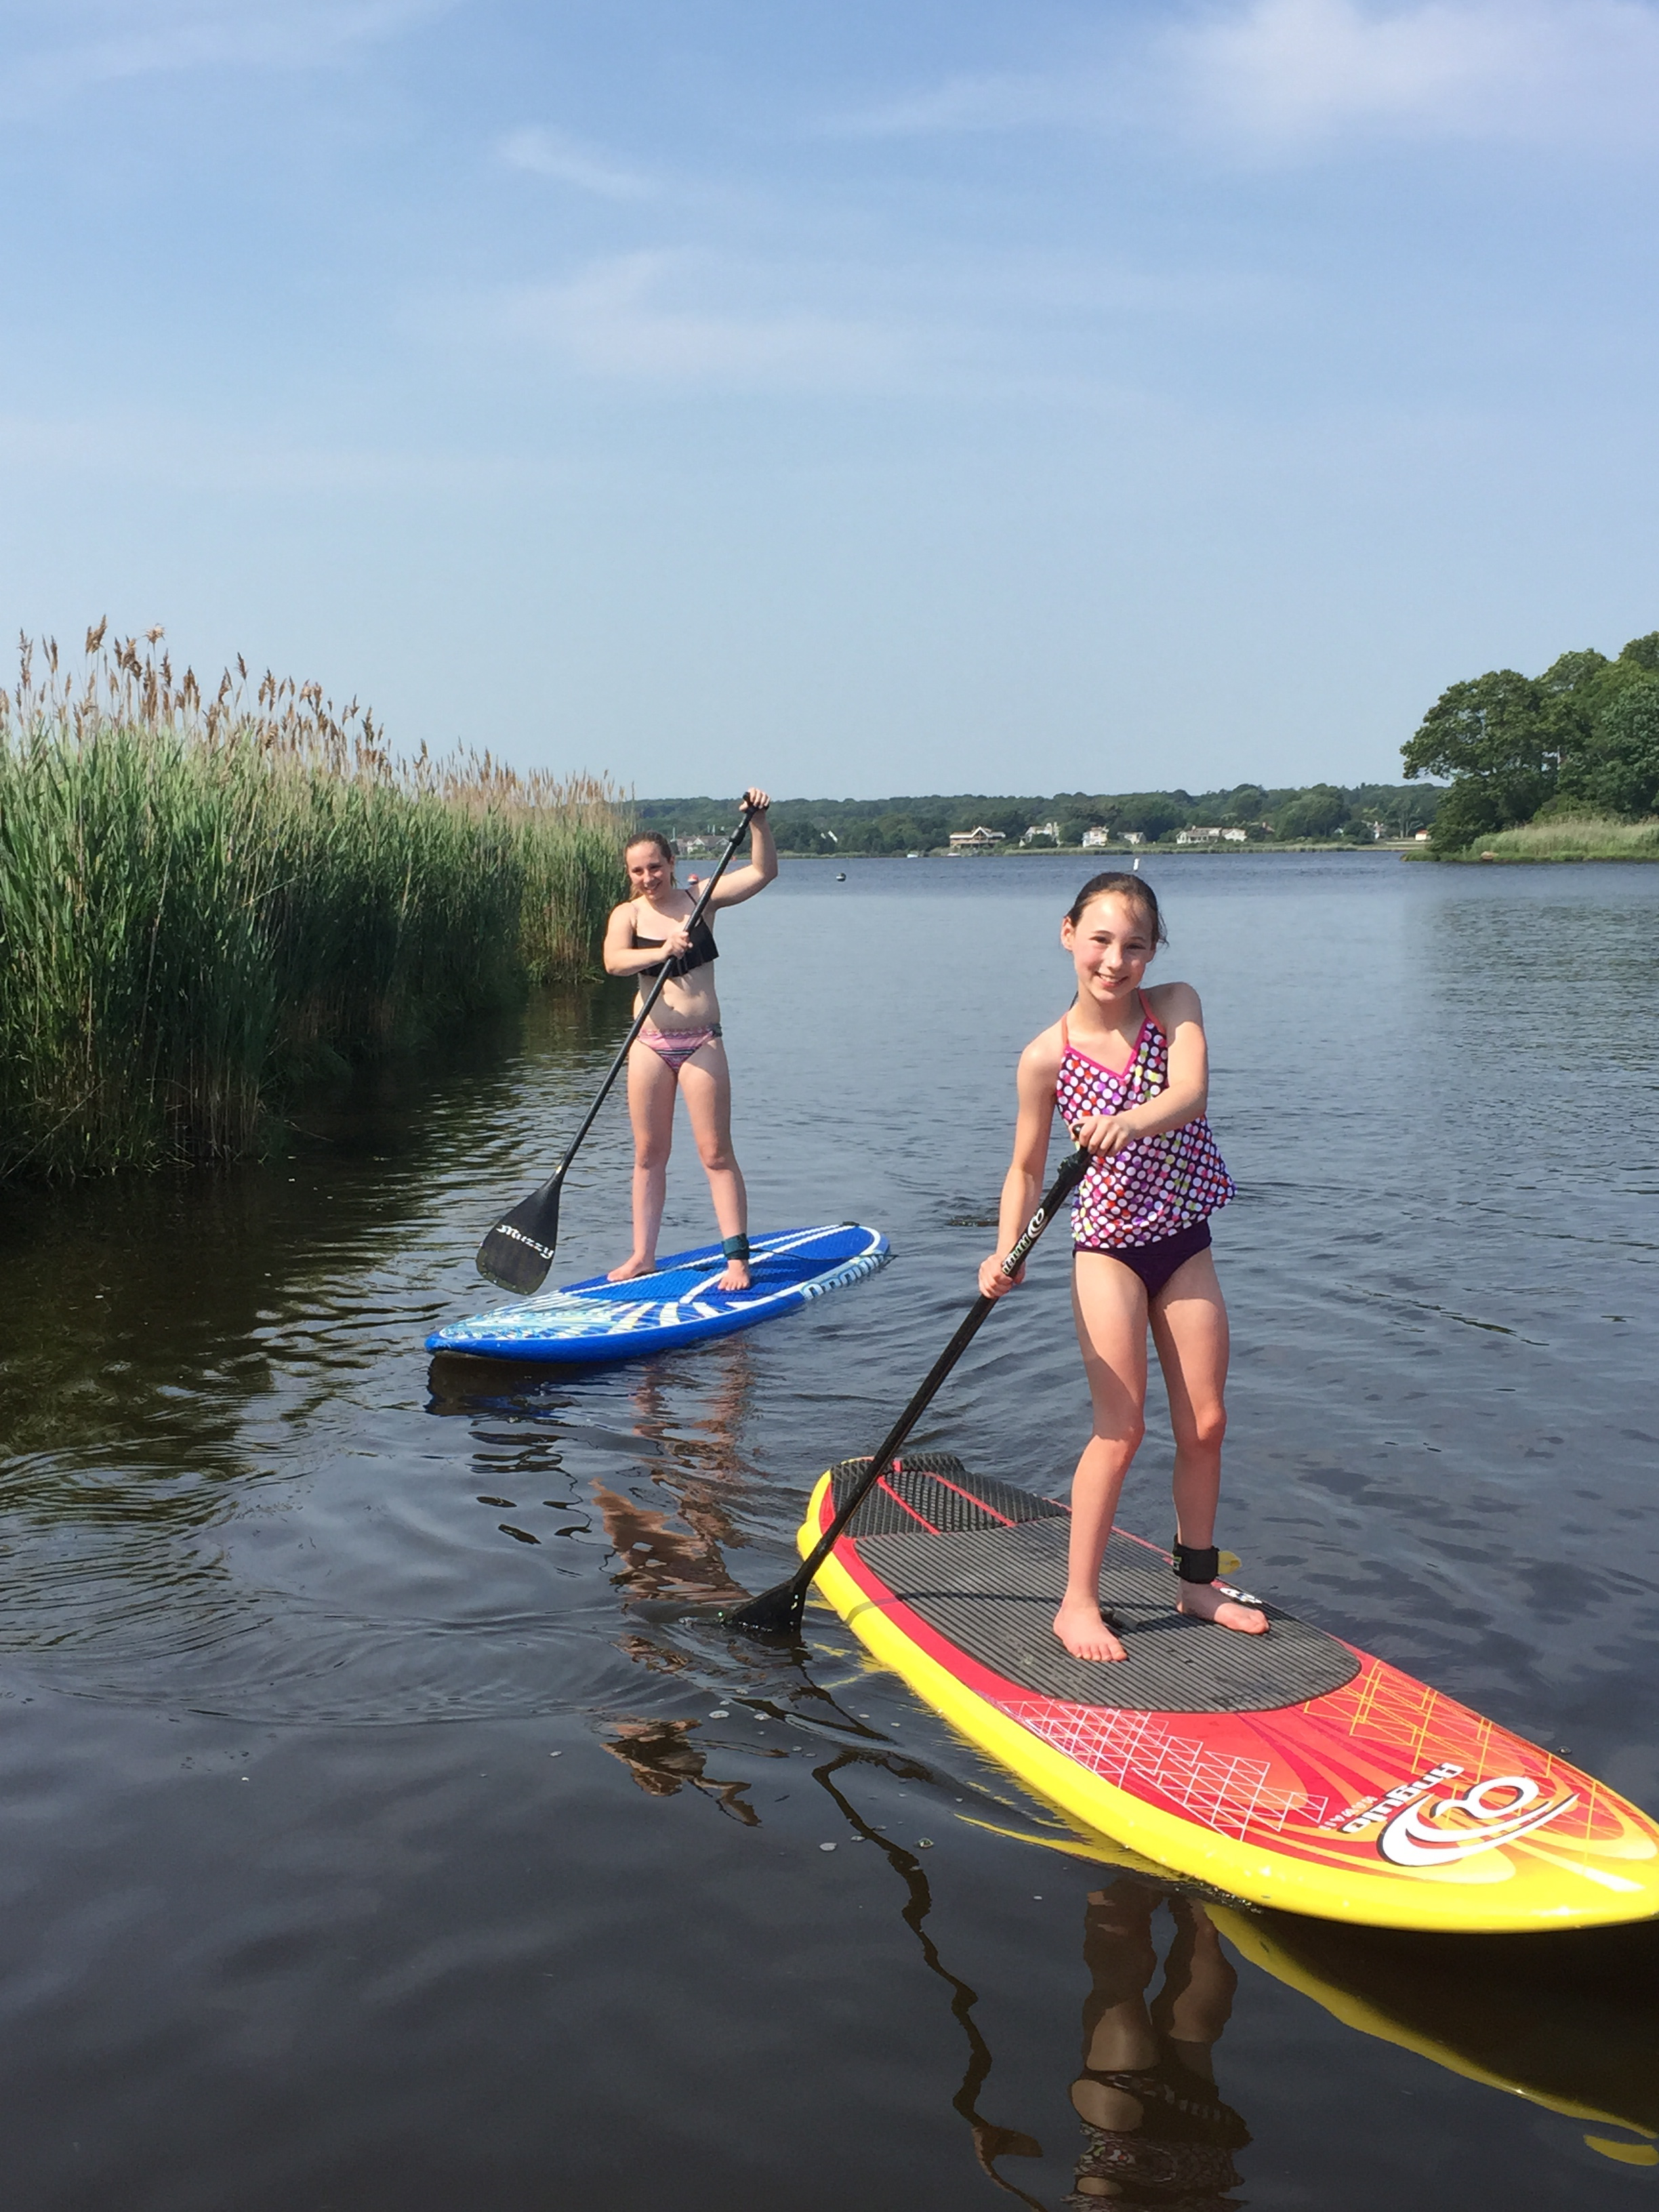 stand up paddle rental westerly, paddle board rental watch hill, paddle board rental ri, stand up paddle rental misquamicut, stand up paddle rental charlestown ri, paddle mystic ct